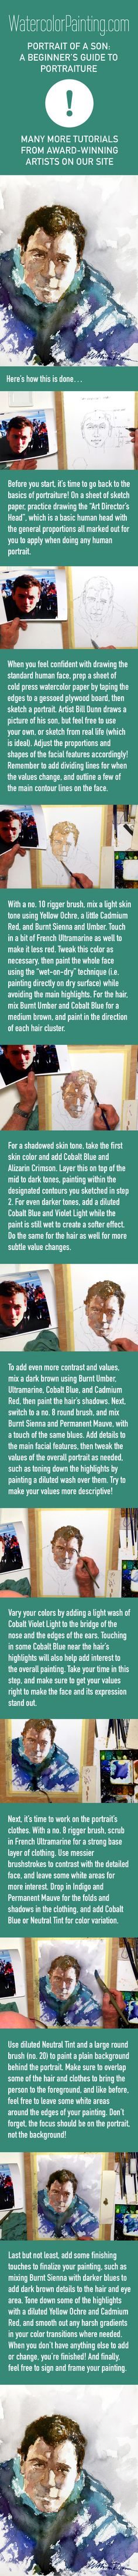 Tackle the popular subject of portraiture in this easy-to-follow lesson on portrait painting! Various beginner, intermediate & advanced watercolor techniques are taught step-by-step so you can follow along. #paintingideas Click here for free full tutorial: https://watercolorpainting.com/watercolor-portrait-beginners-guide/?utm_source=pinterest&utm_medium=pin-stepbystep&utm_campaign=pinterest-organic-footprint&utm_content=watercolor-portrait-beginners-guide